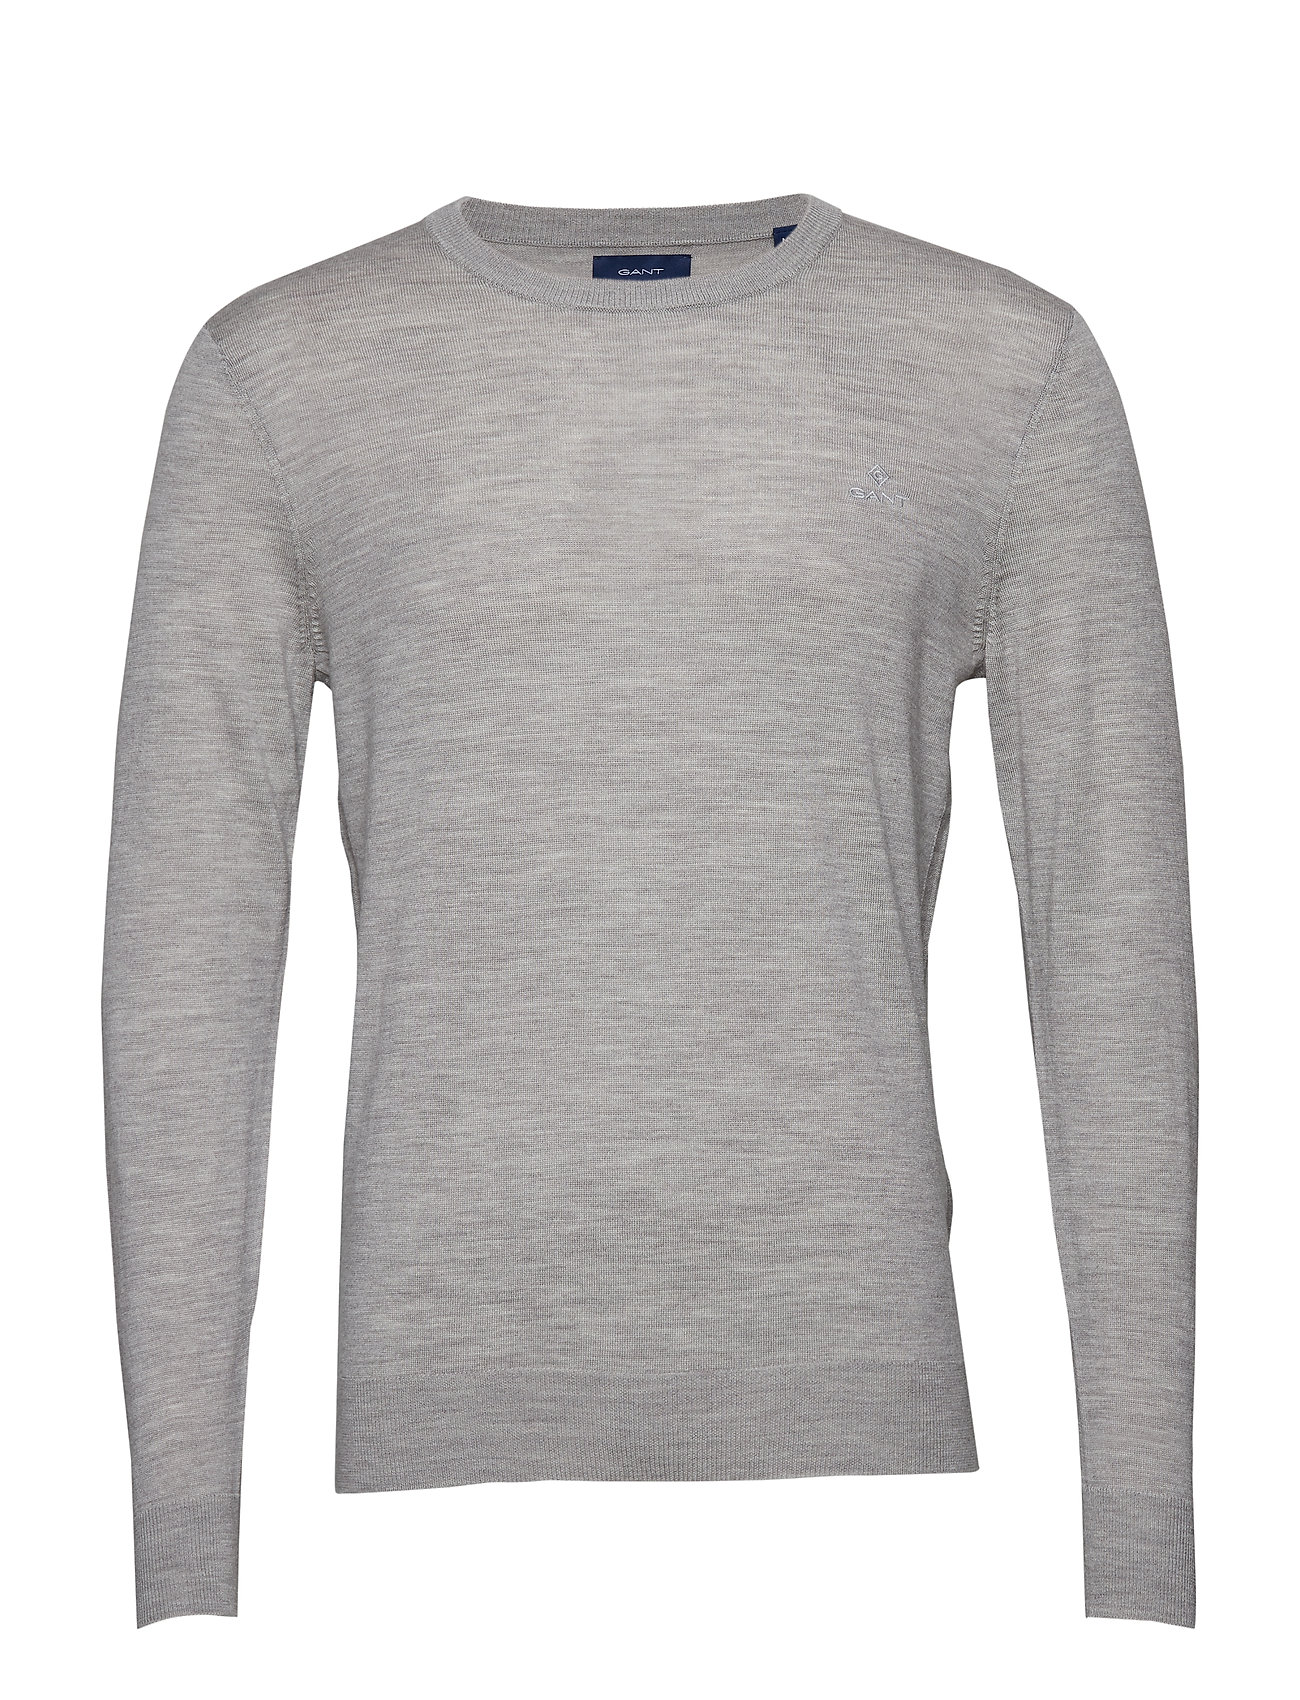 GANT D1. WASHABLE MERINO C-NECK